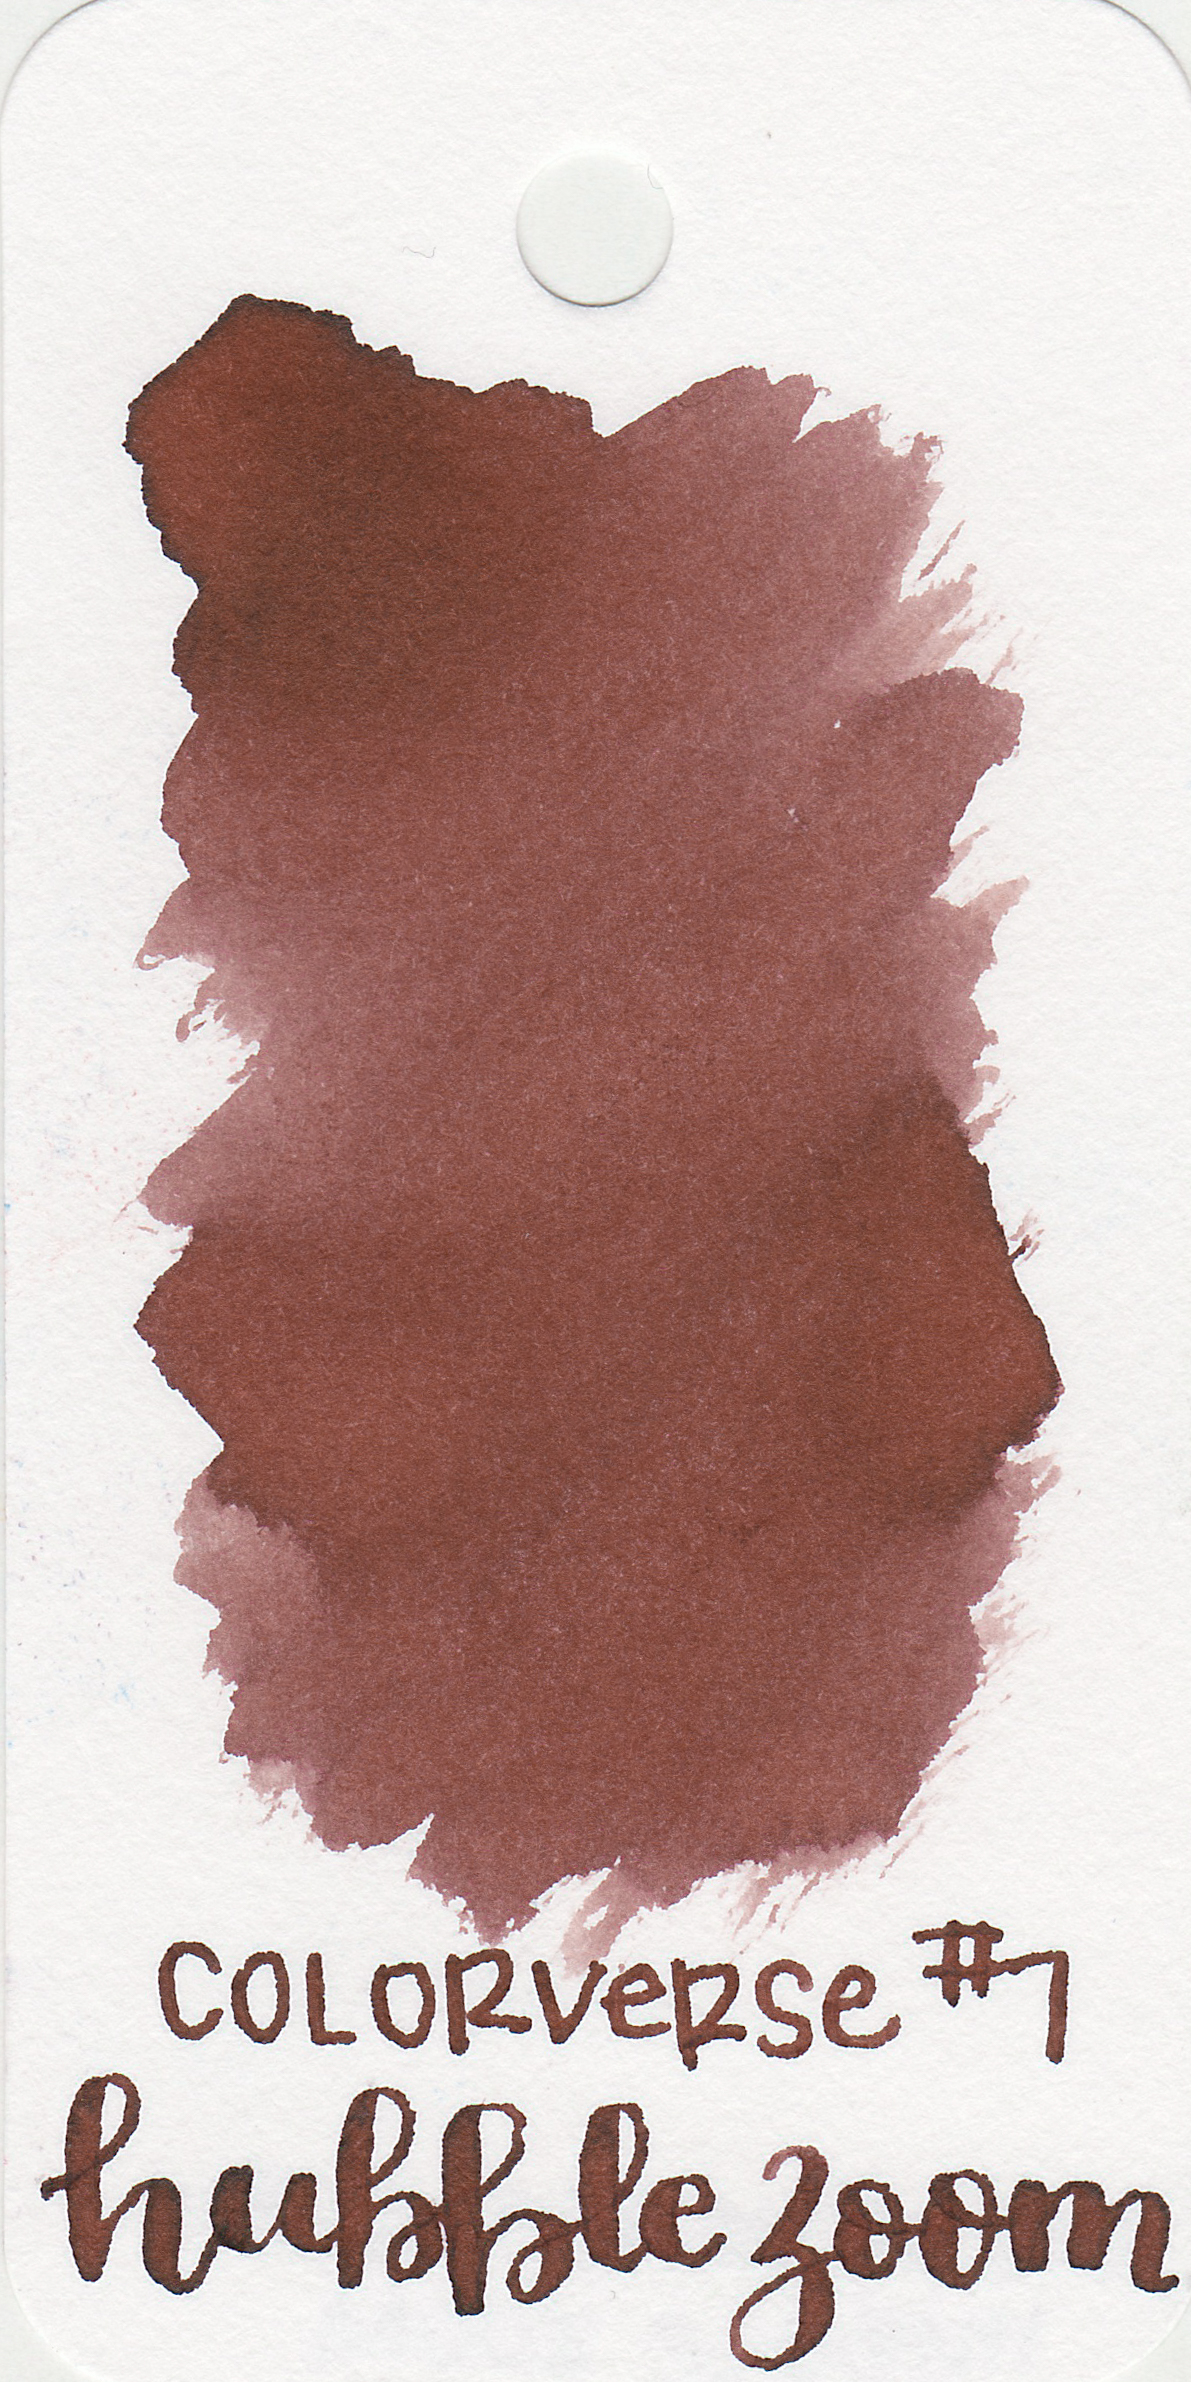 The color: - Hubble Zoom is a medium warm brown. It's not quite a red-brown, but has more red than your average brown.